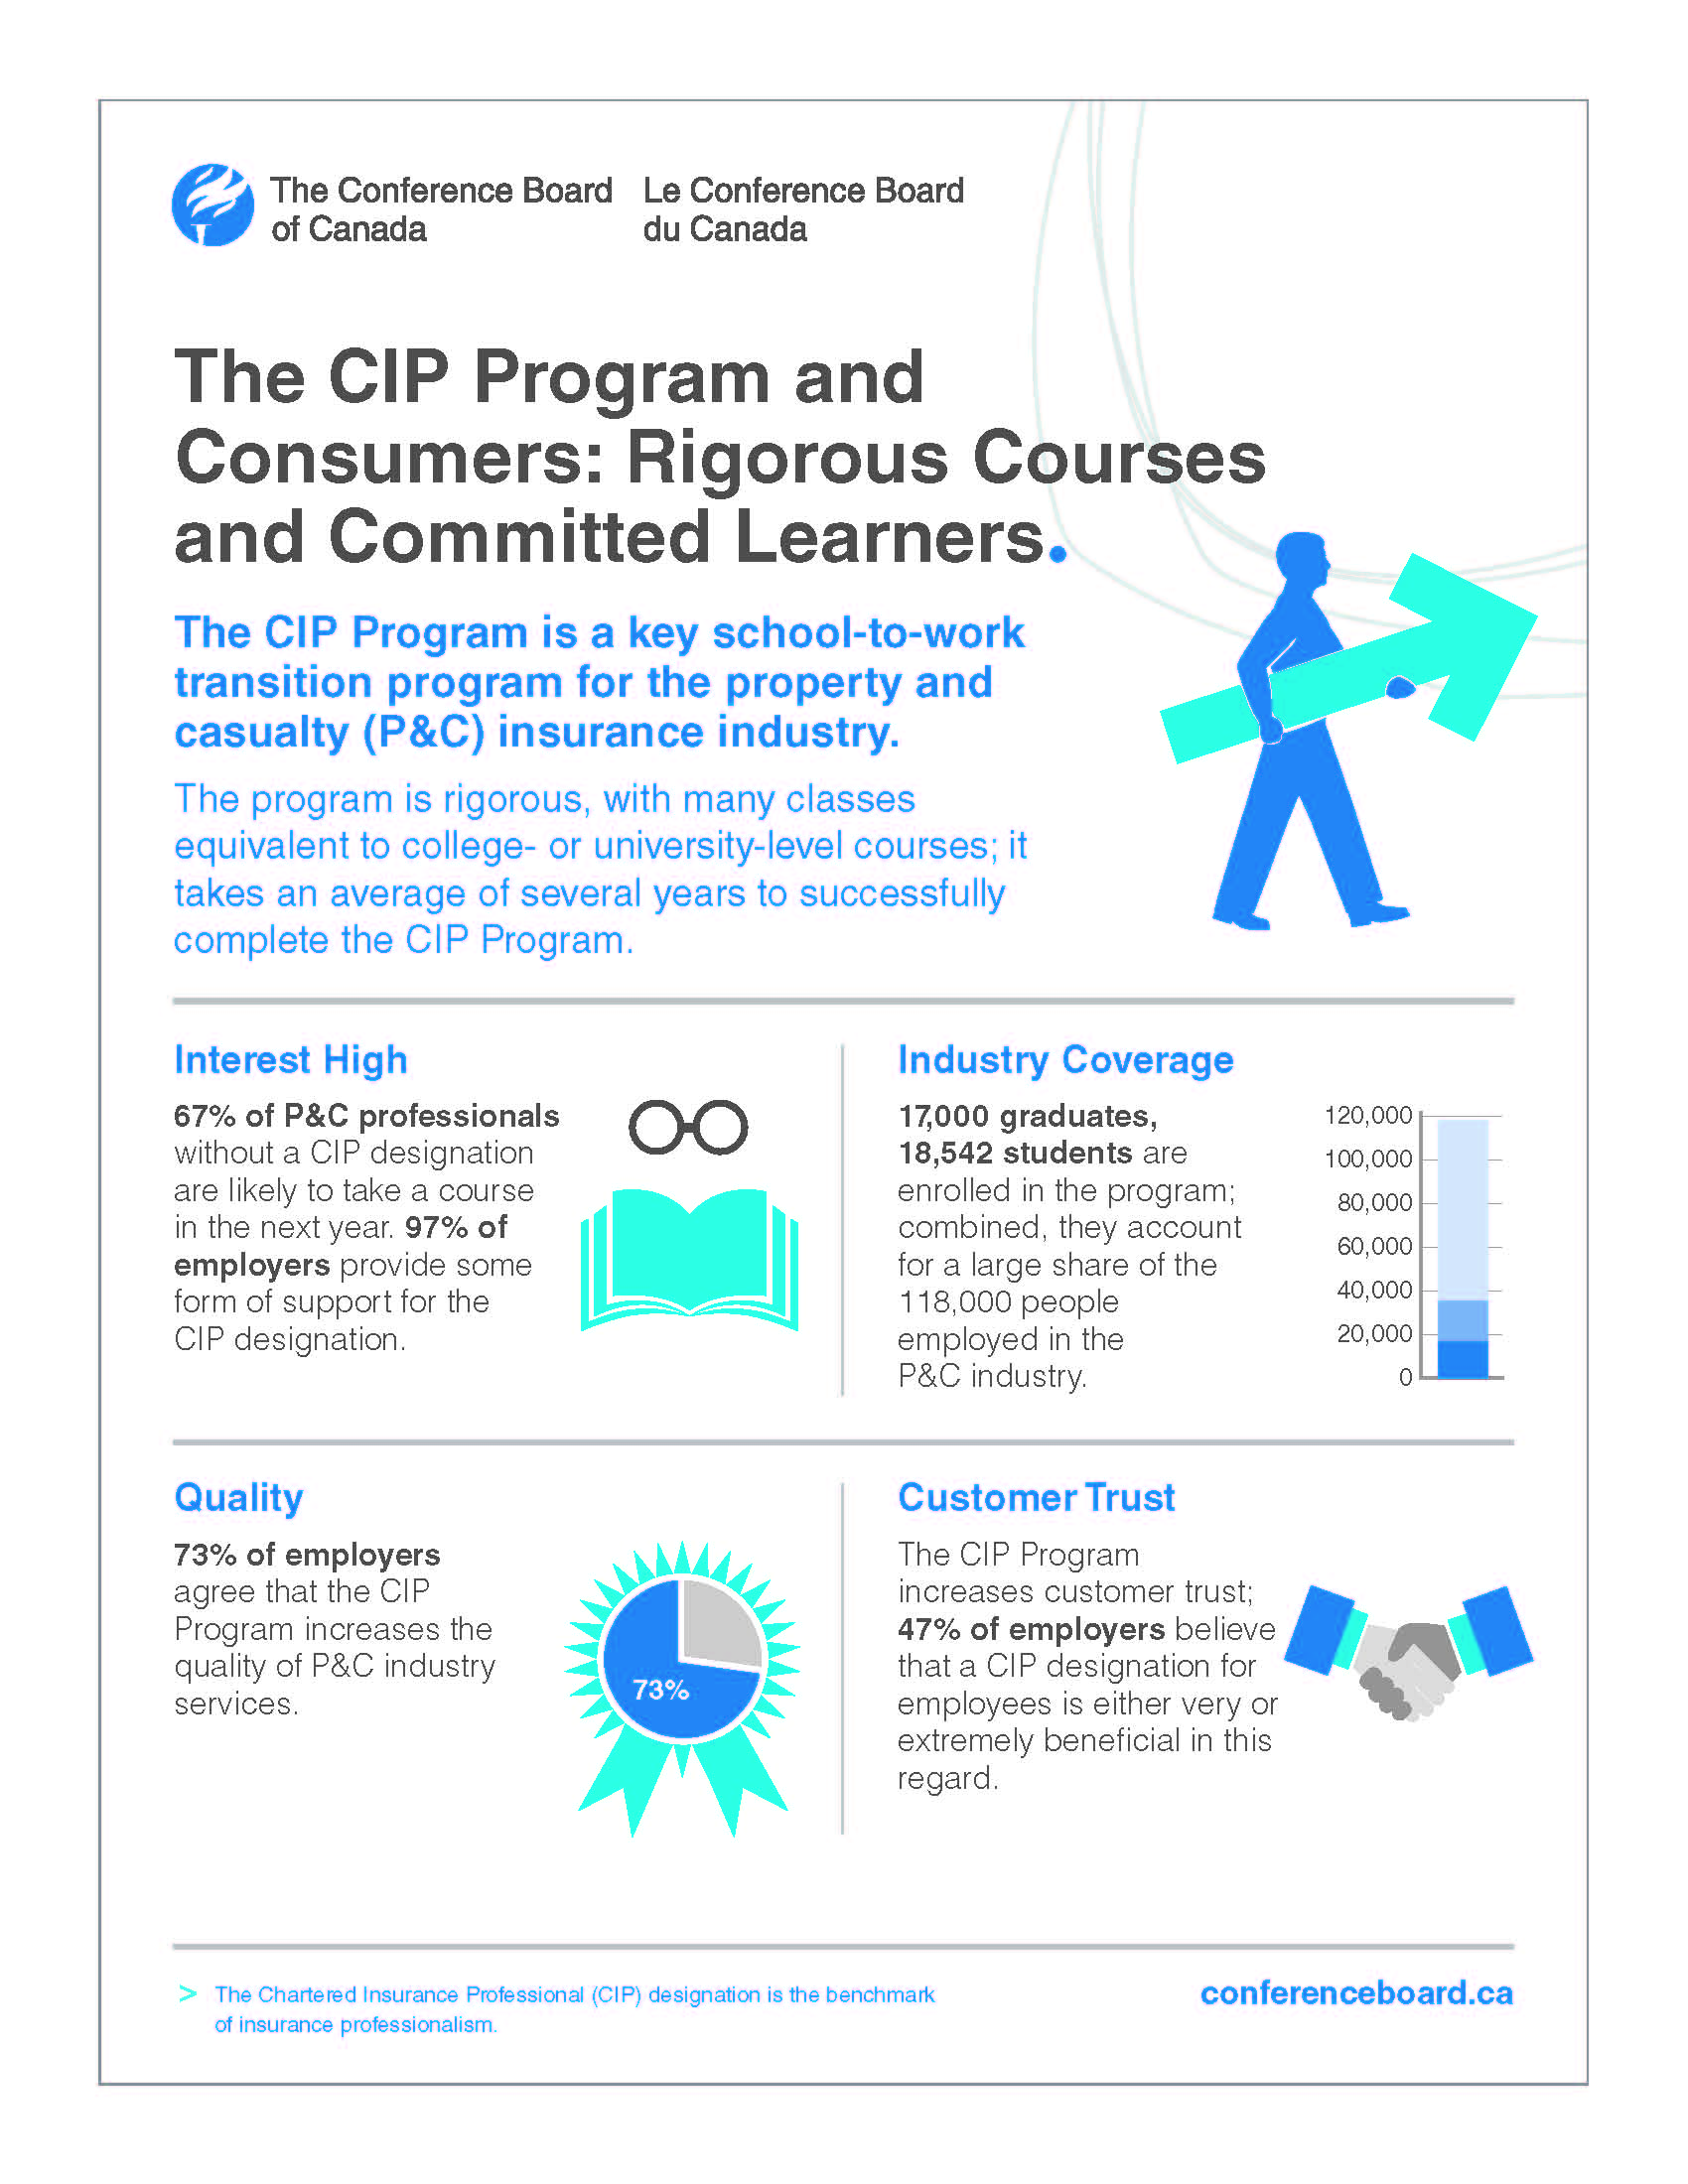 Image links to the CIP program and Consumers page